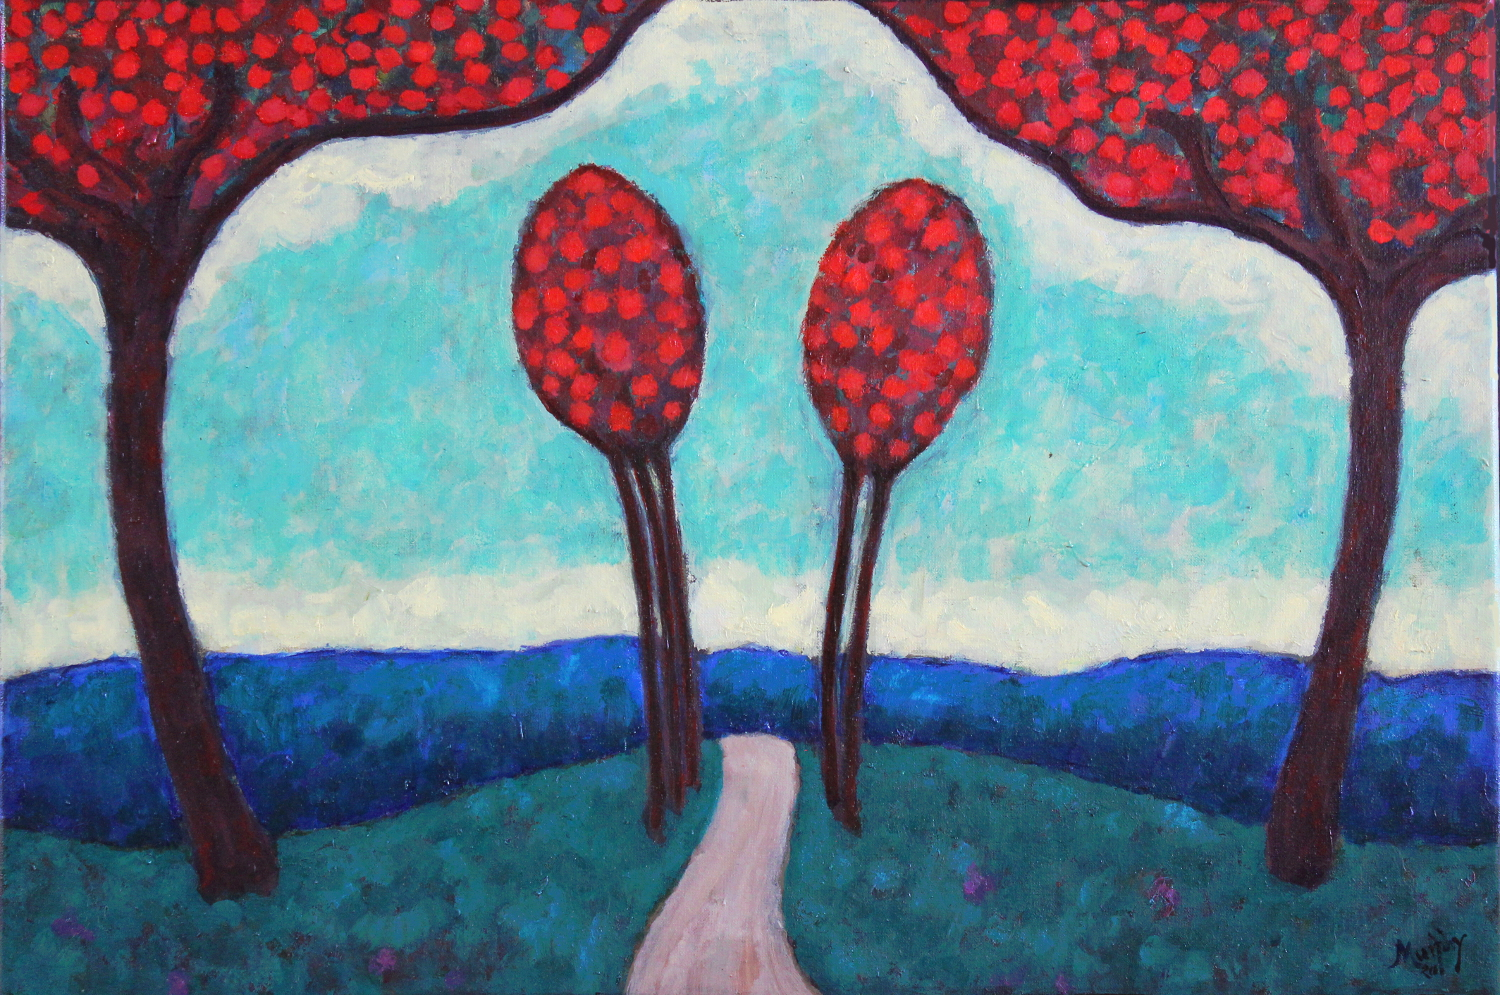 The-Way-to-Campostella-81-x-54-cm-oil-on-canvas-web